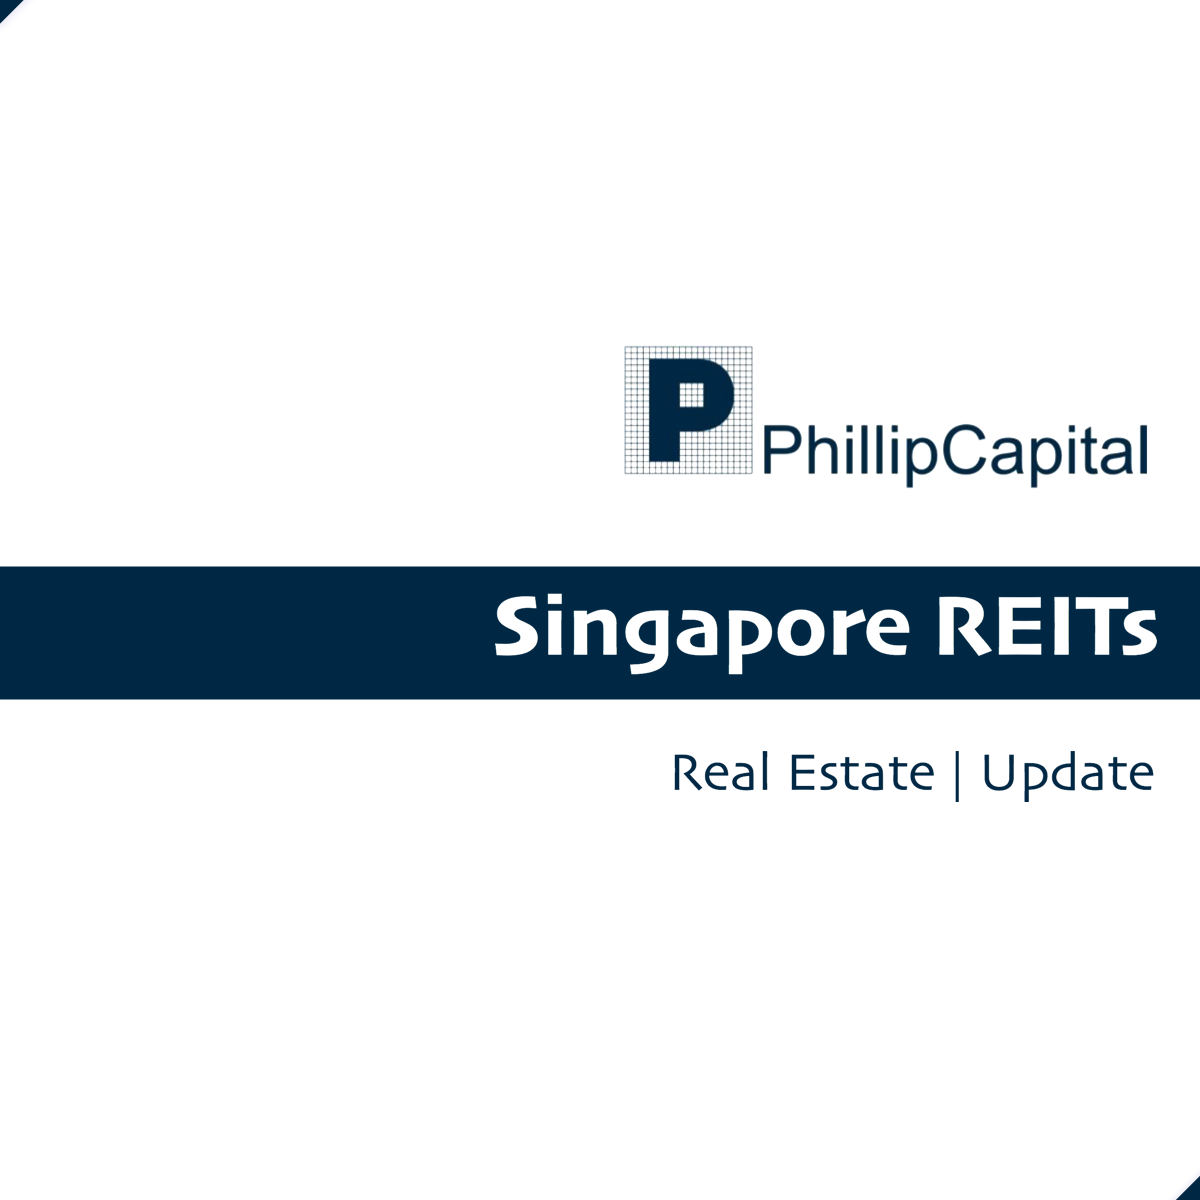 Singapore REITs - Phillip Securities 2017-10-09: The 10 Most Commonly Asked Questions